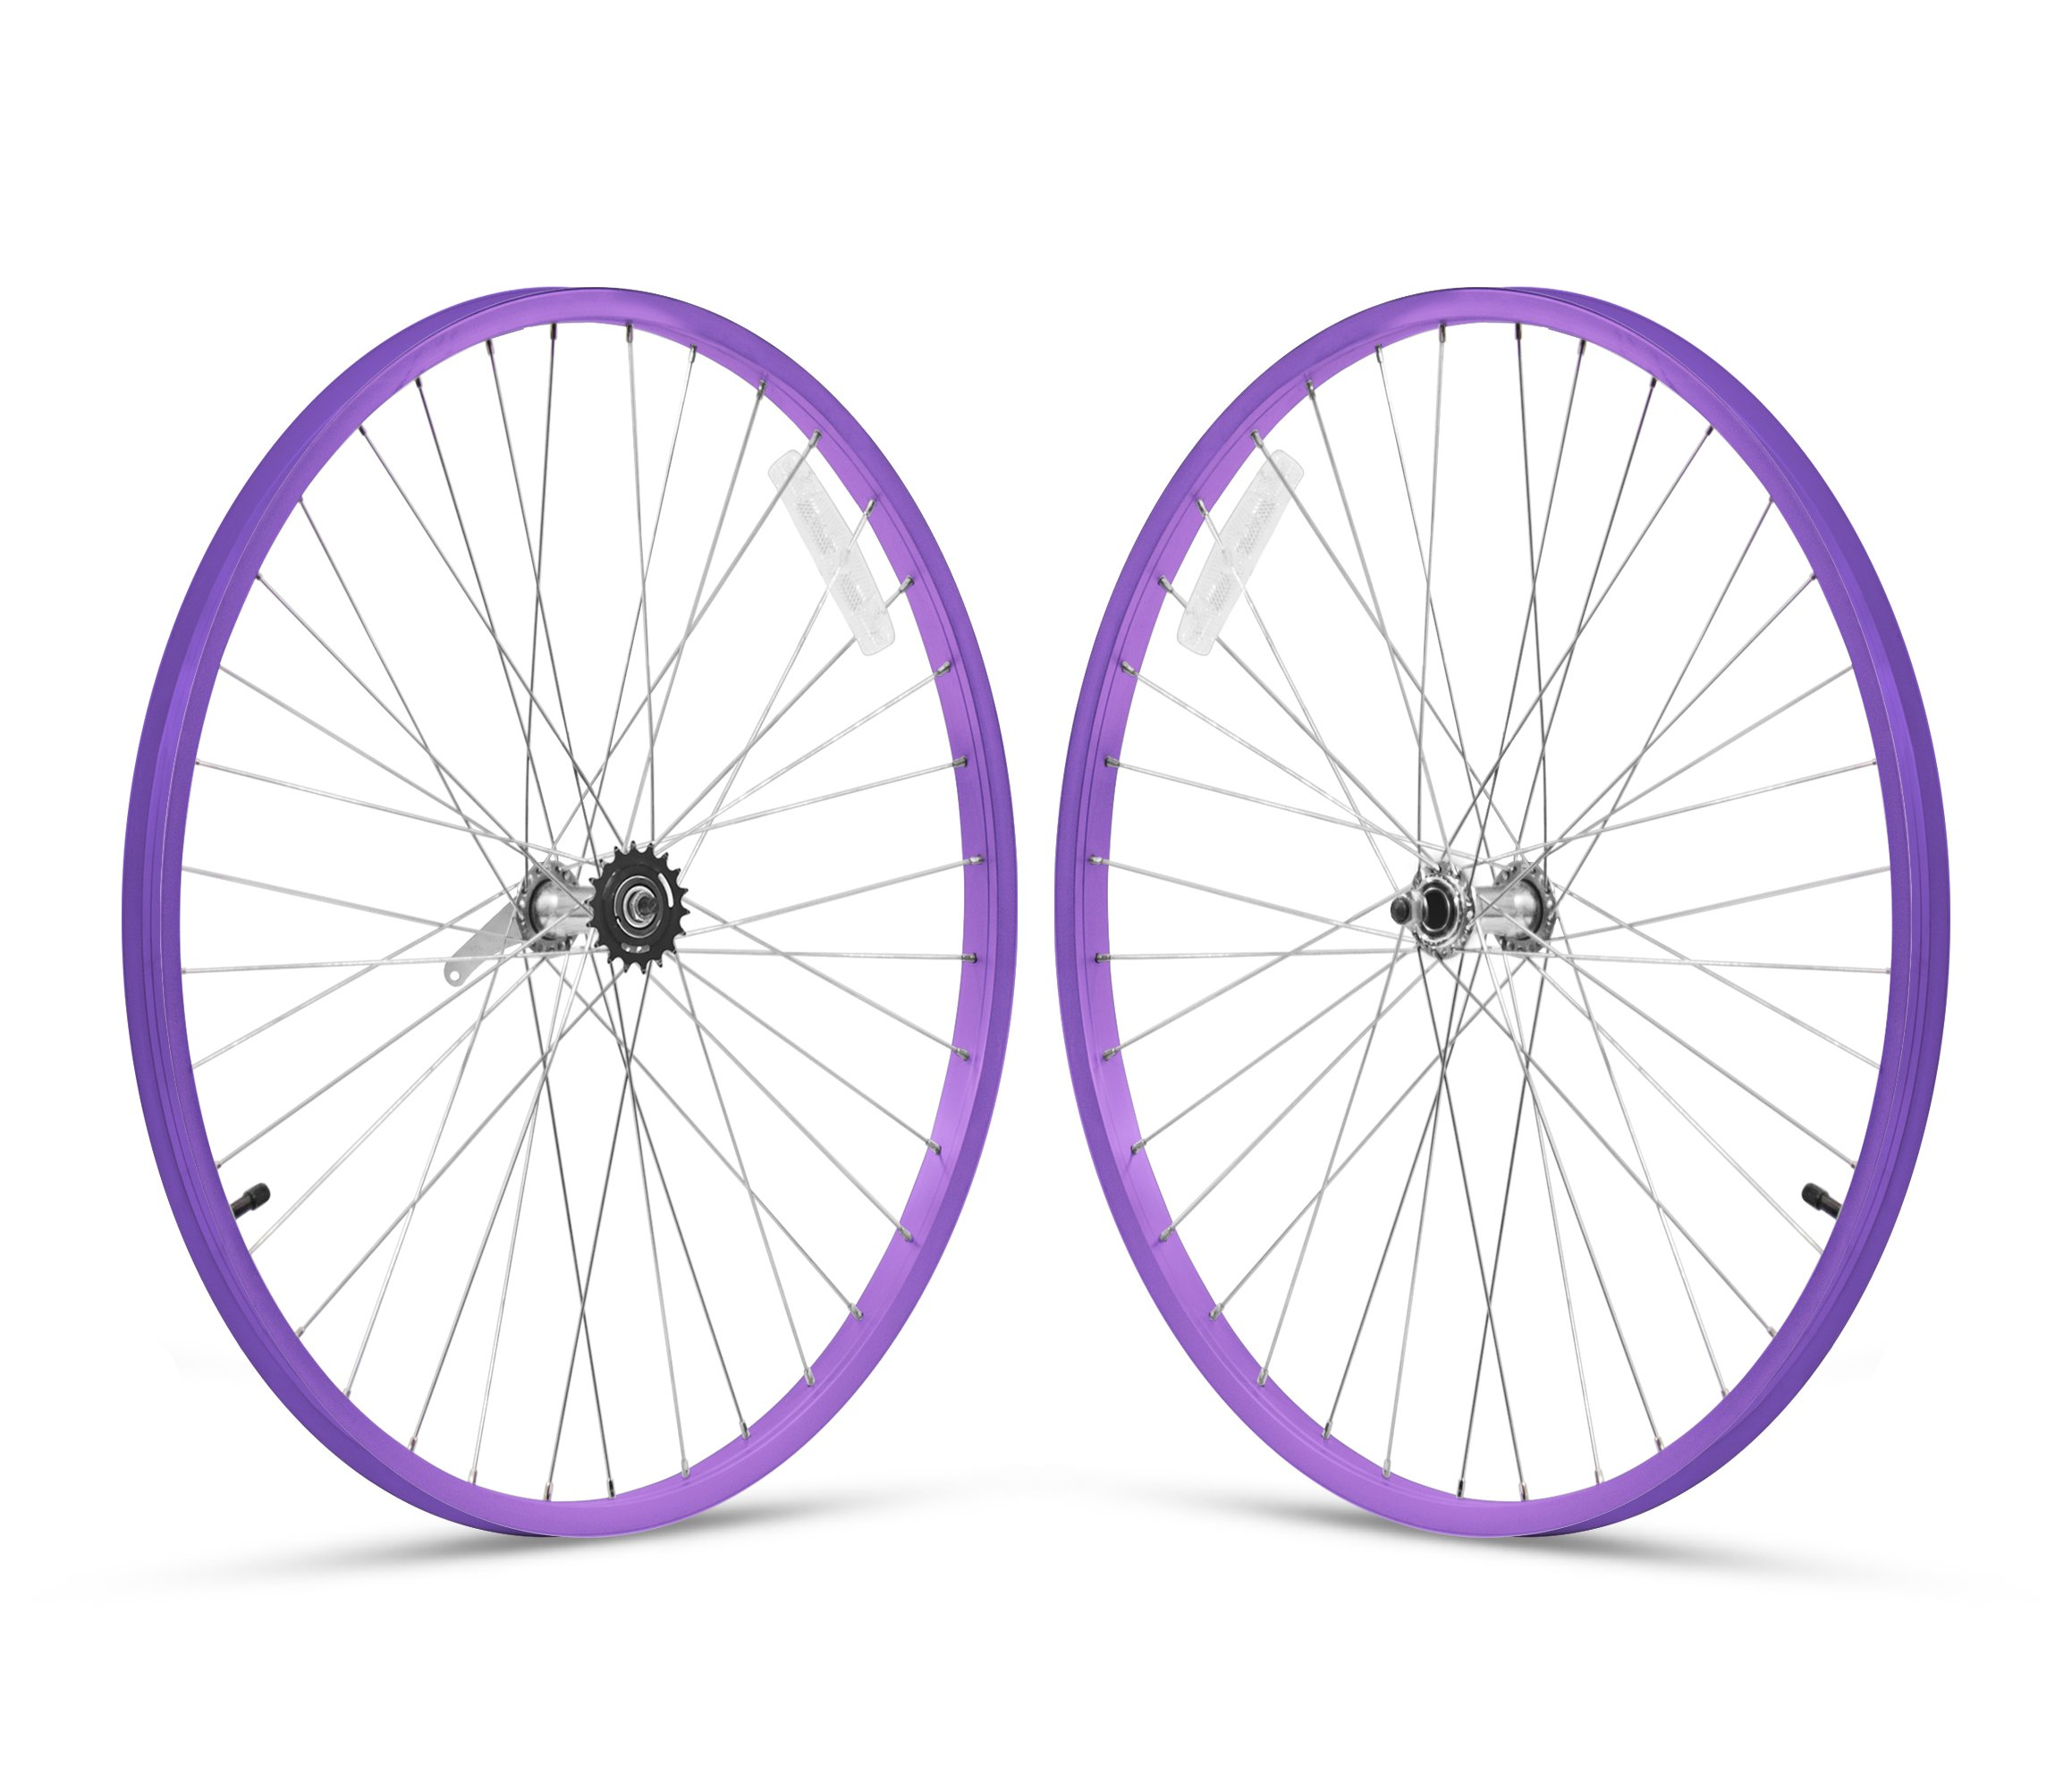 Firmstrong 1-Speed Beach Cruiser Bicycle Wheelset, Front/Rear, Purple, 26''